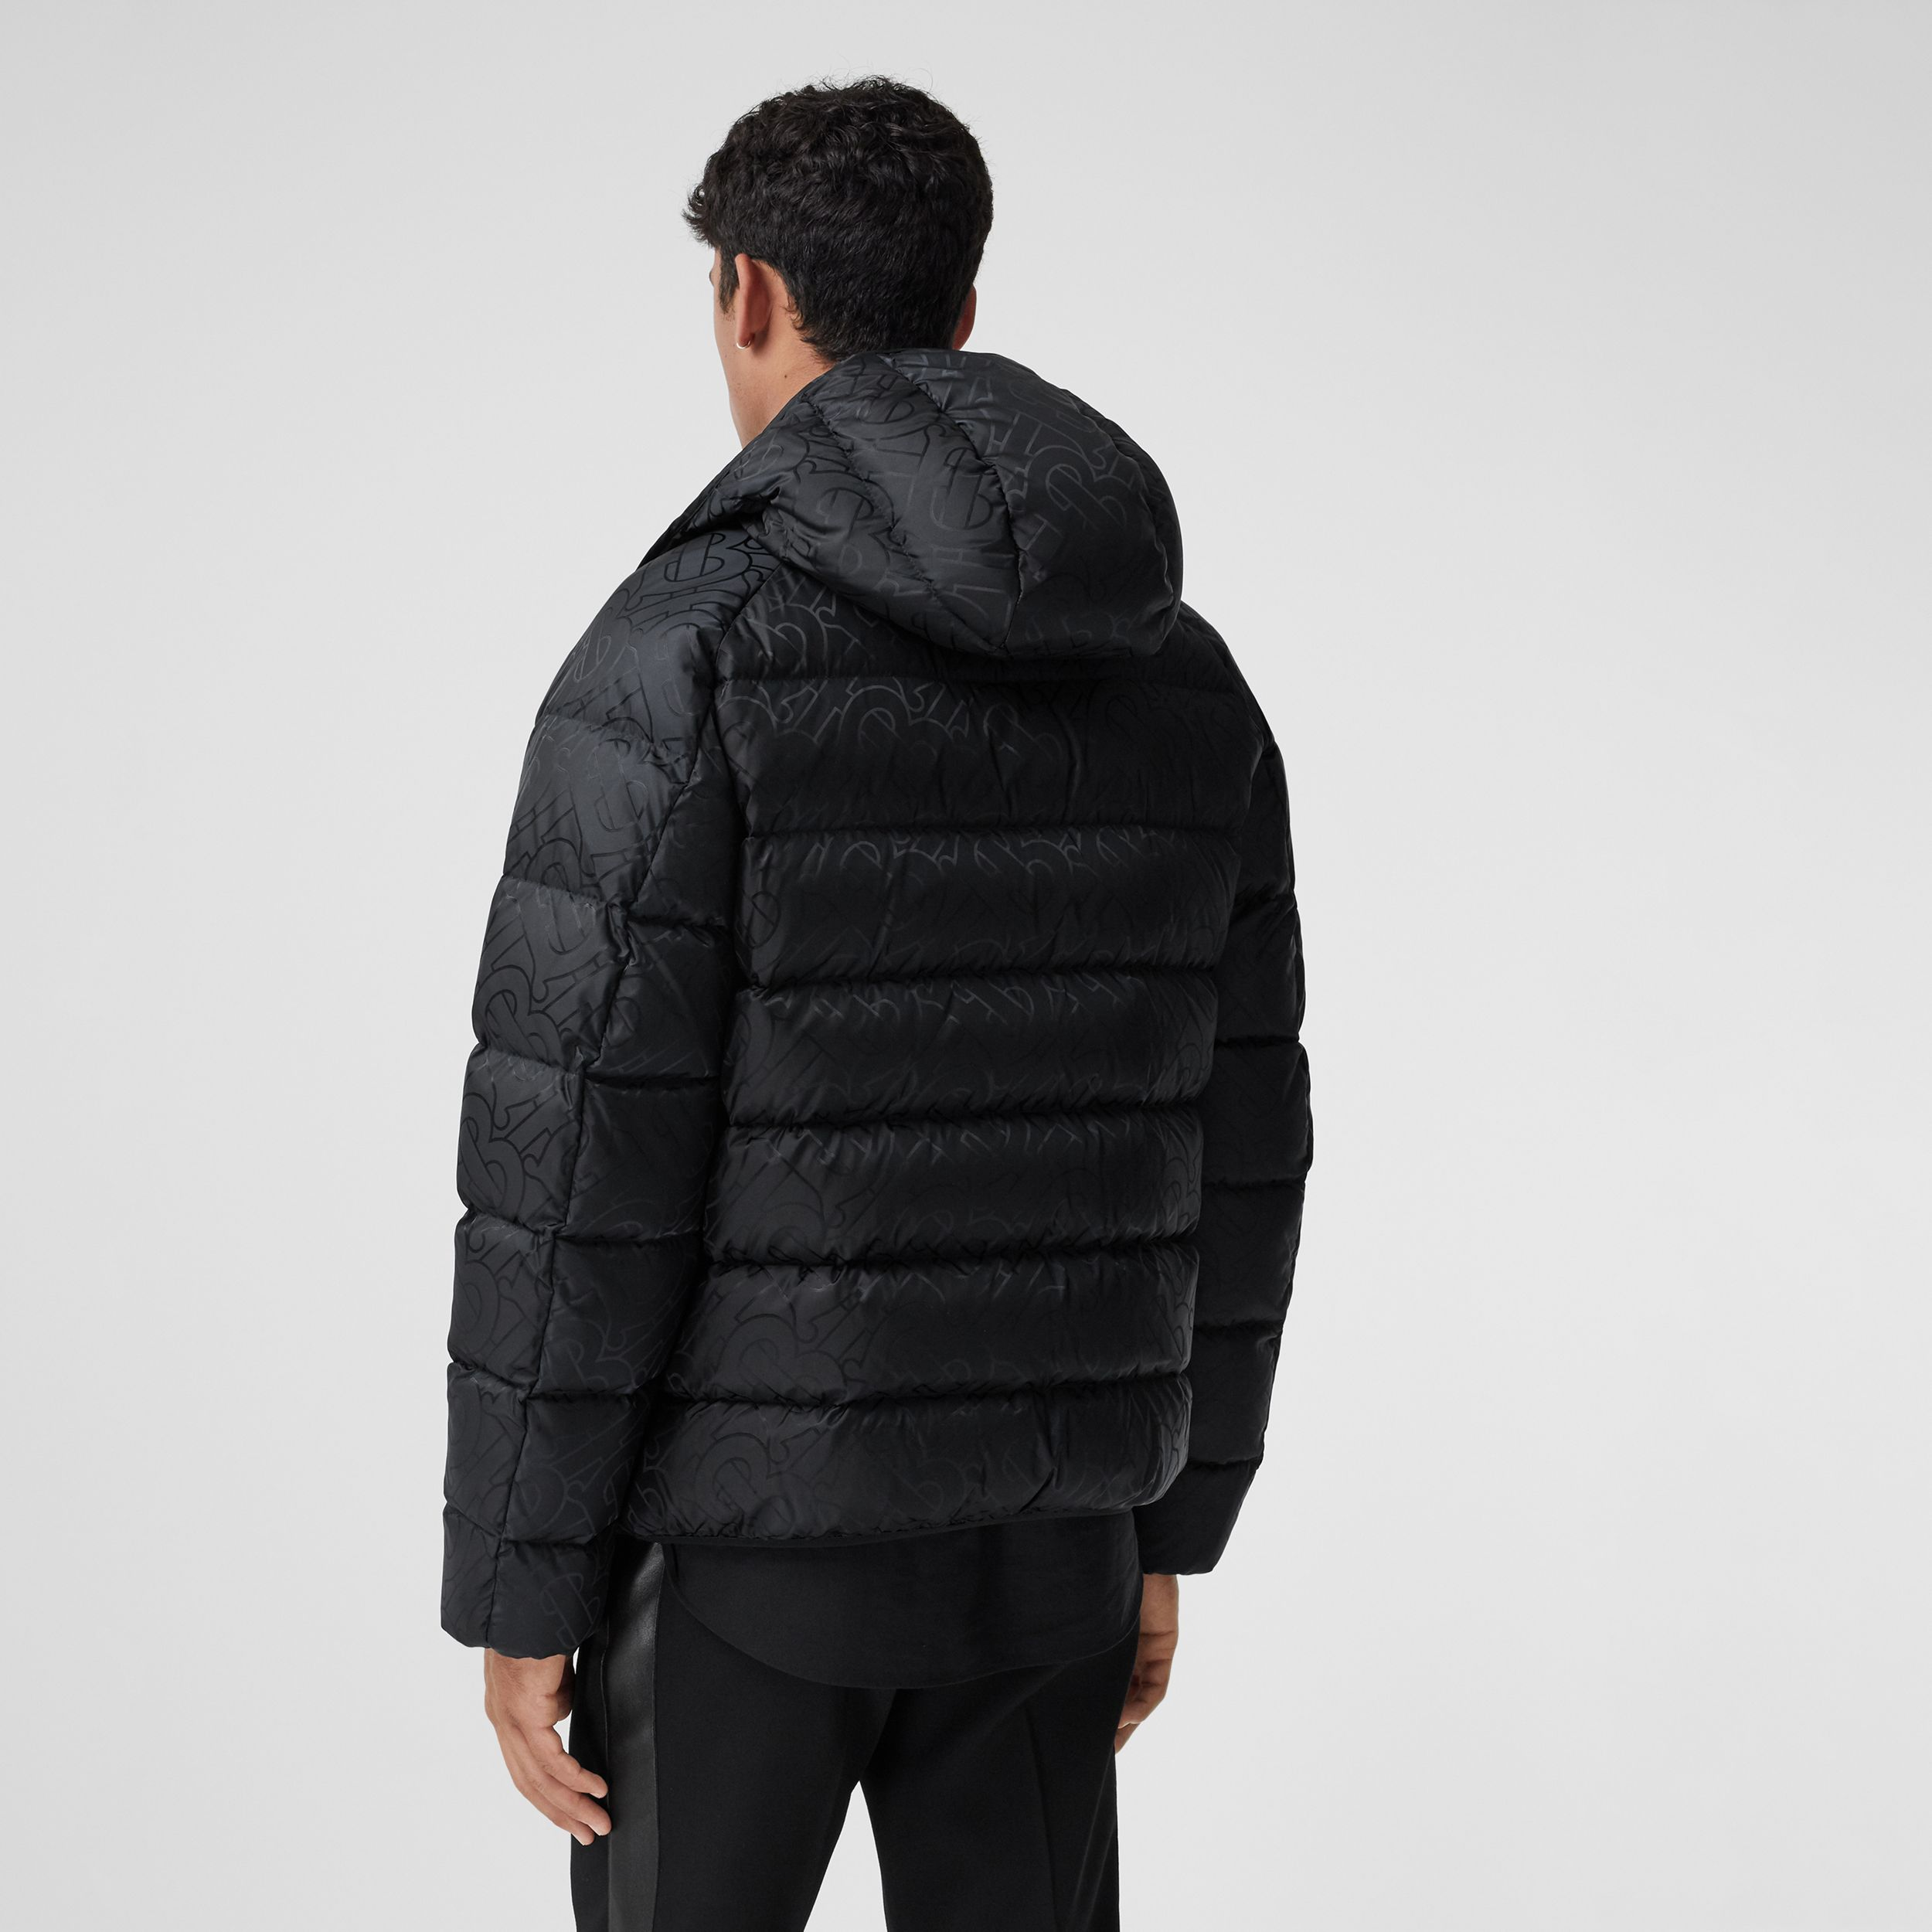 Monogram Jacquard Hooded Puffer Jacket in Black - Men | Burberry United States - 3